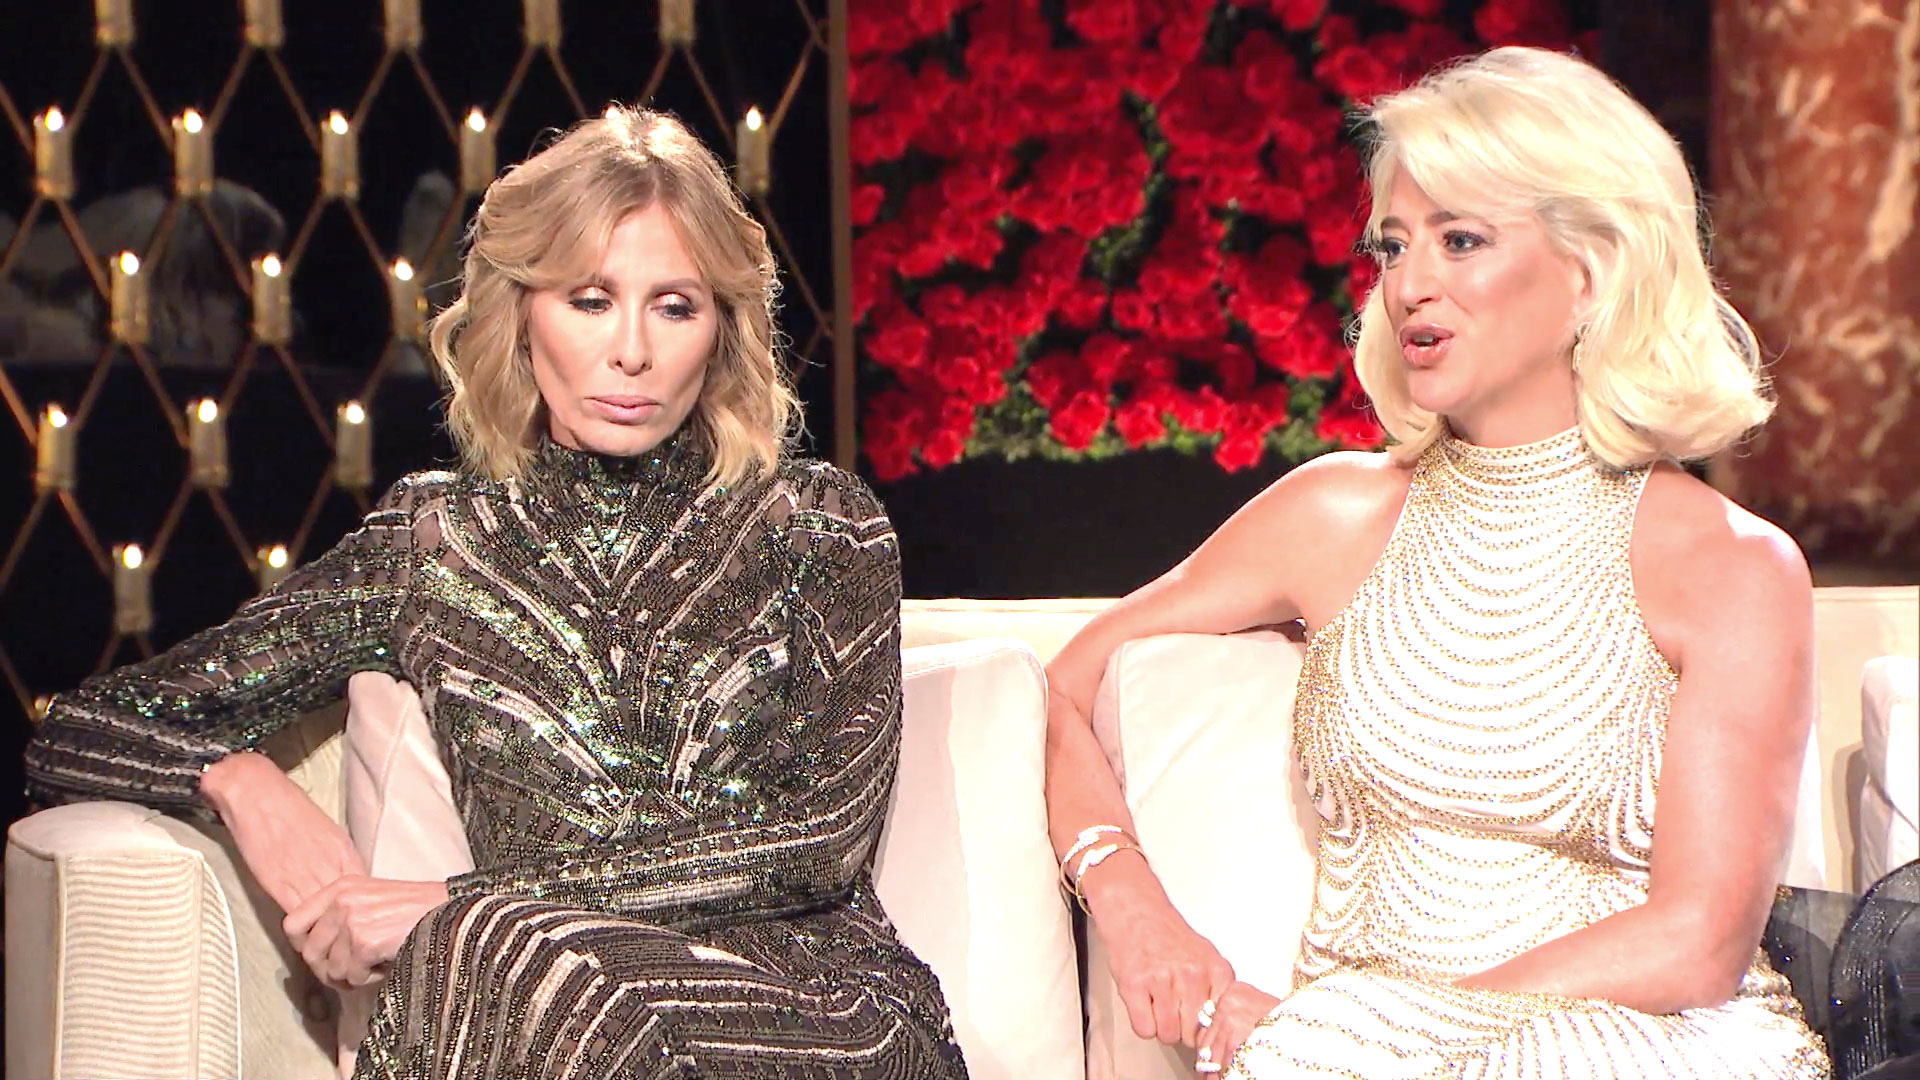 Does Dorinda Medley Think She Should Go to Rehab?